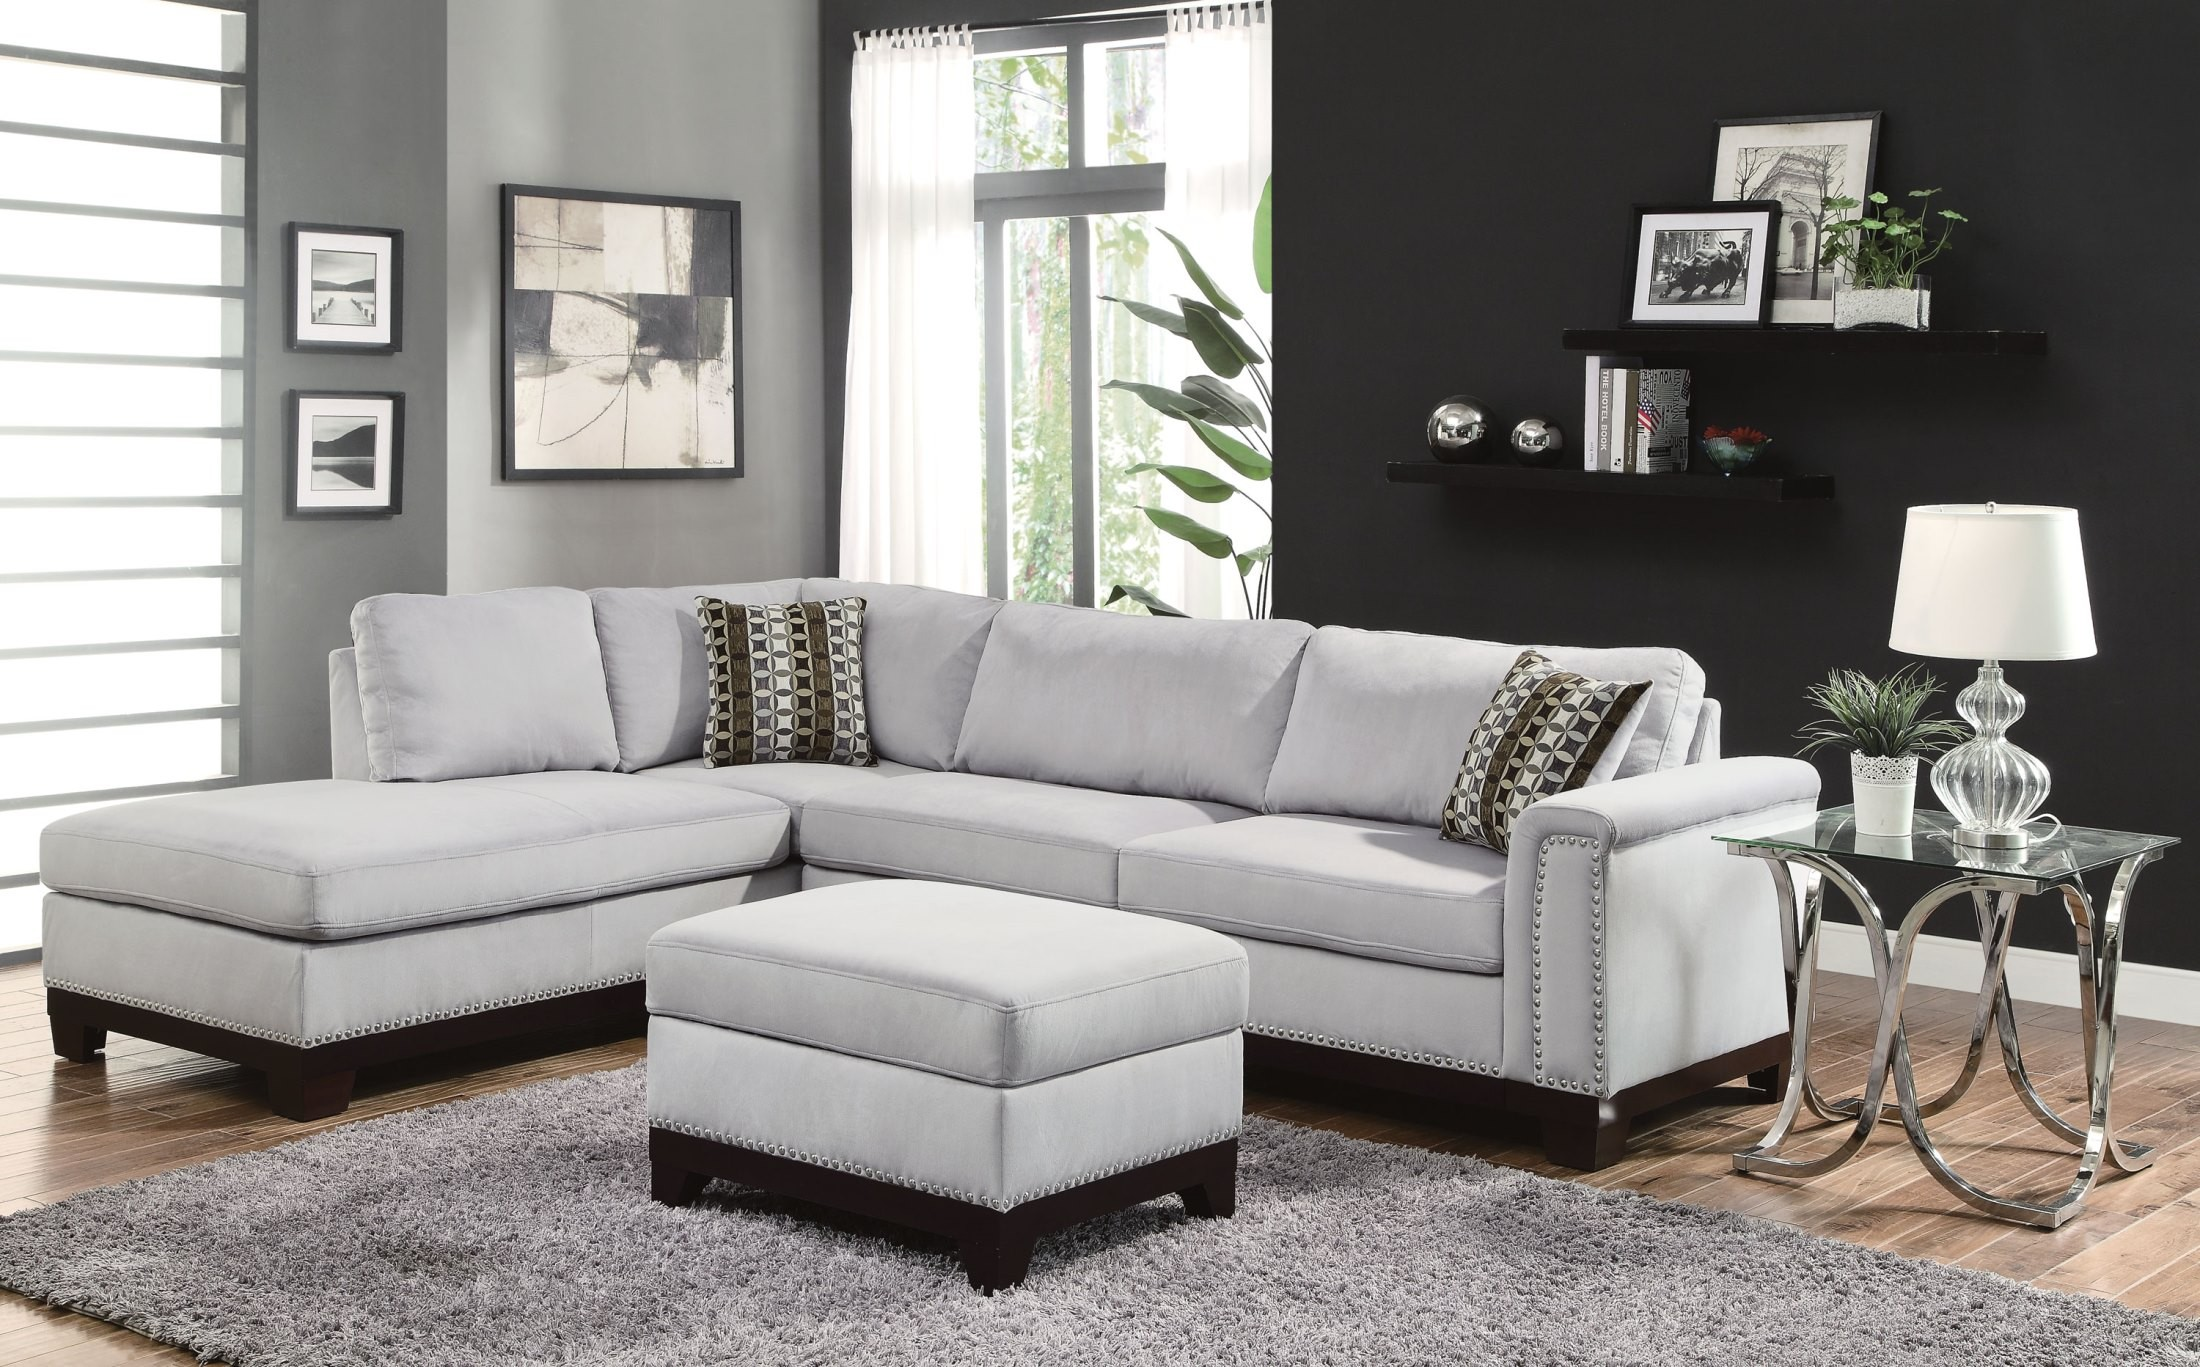 sleeper modular luxury sectional architecture and top image home design sofa grey